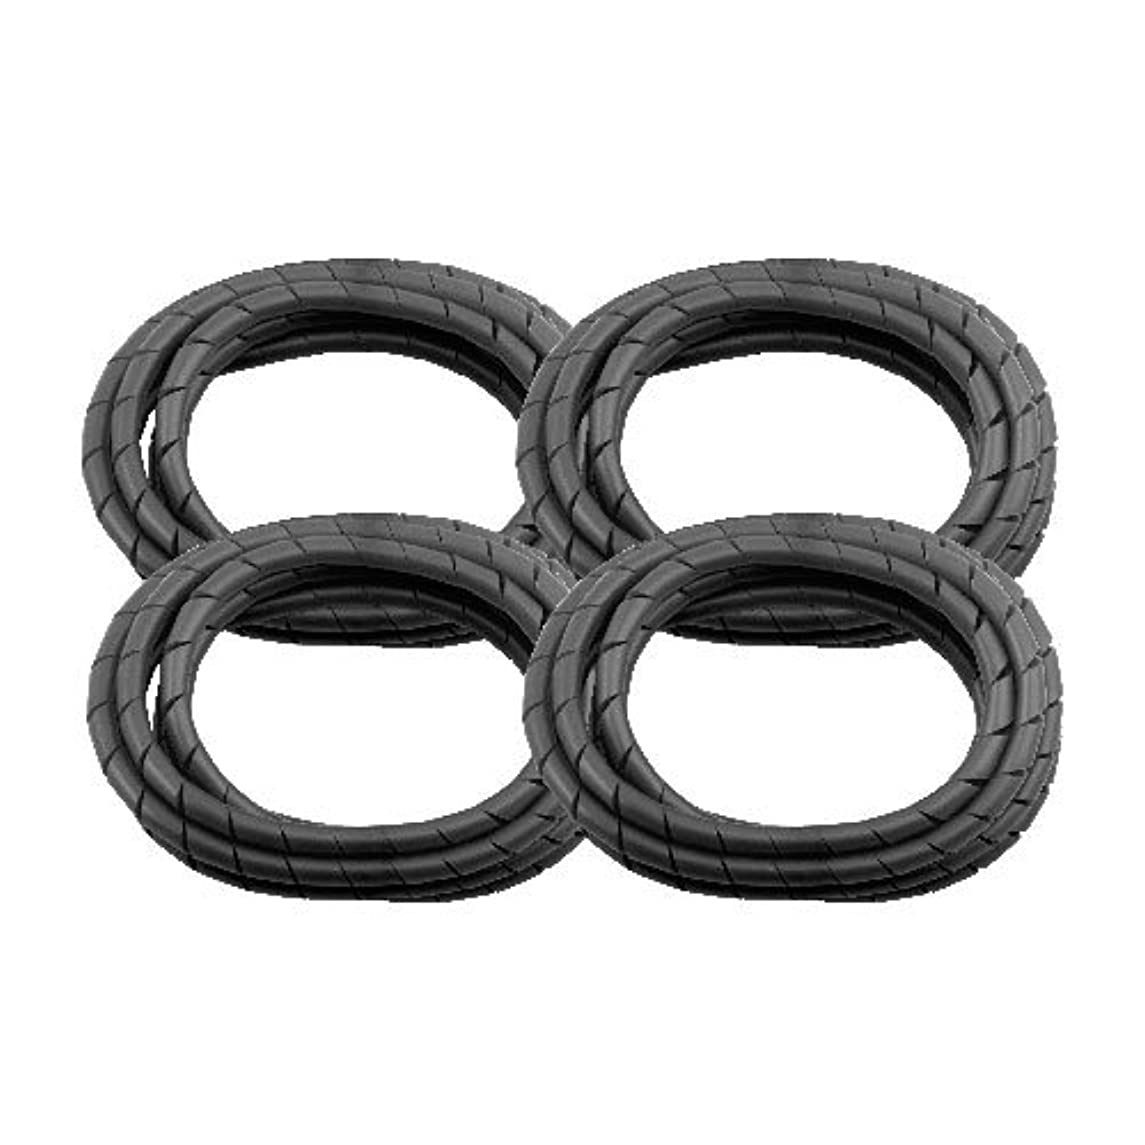 4 Pack MD Premium 8' Cord Cover Prevents Cord Tangling - Black